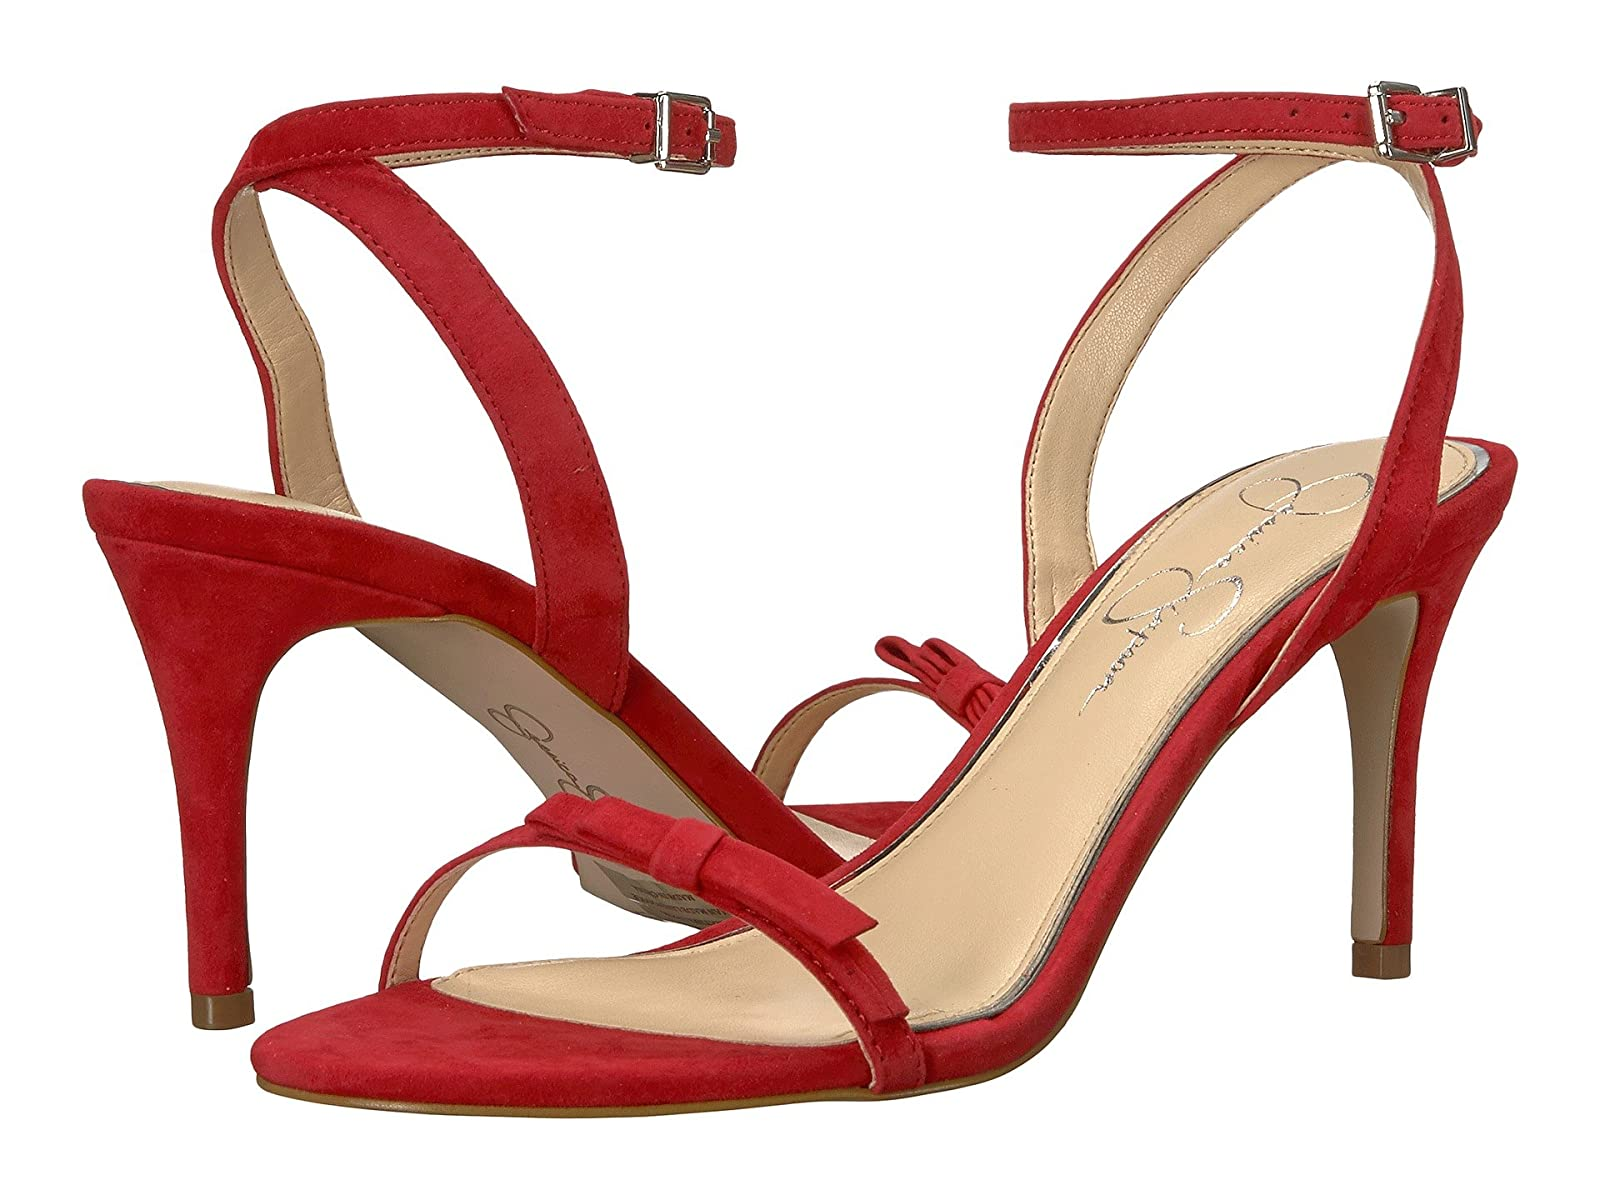 Jessica Simpson PurellaCheap and distinctive eye-catching shoes